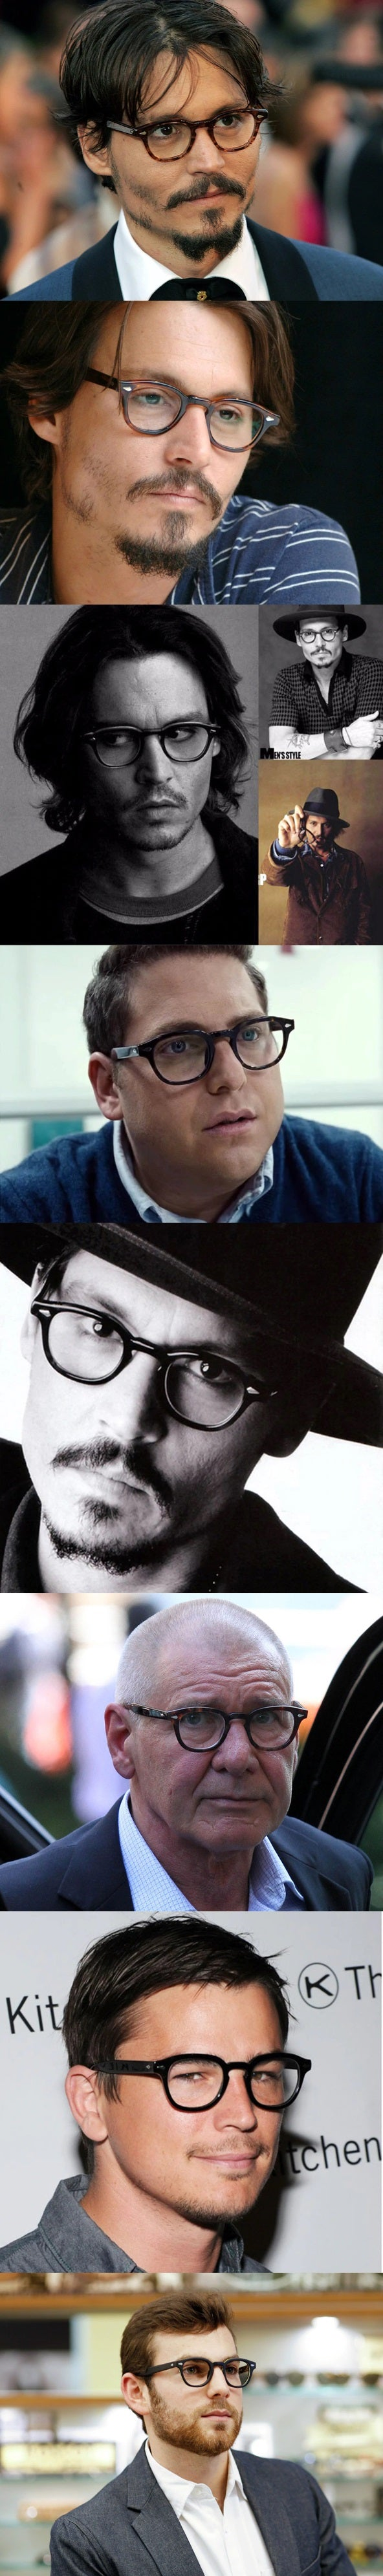 johnny depp eyeglasses